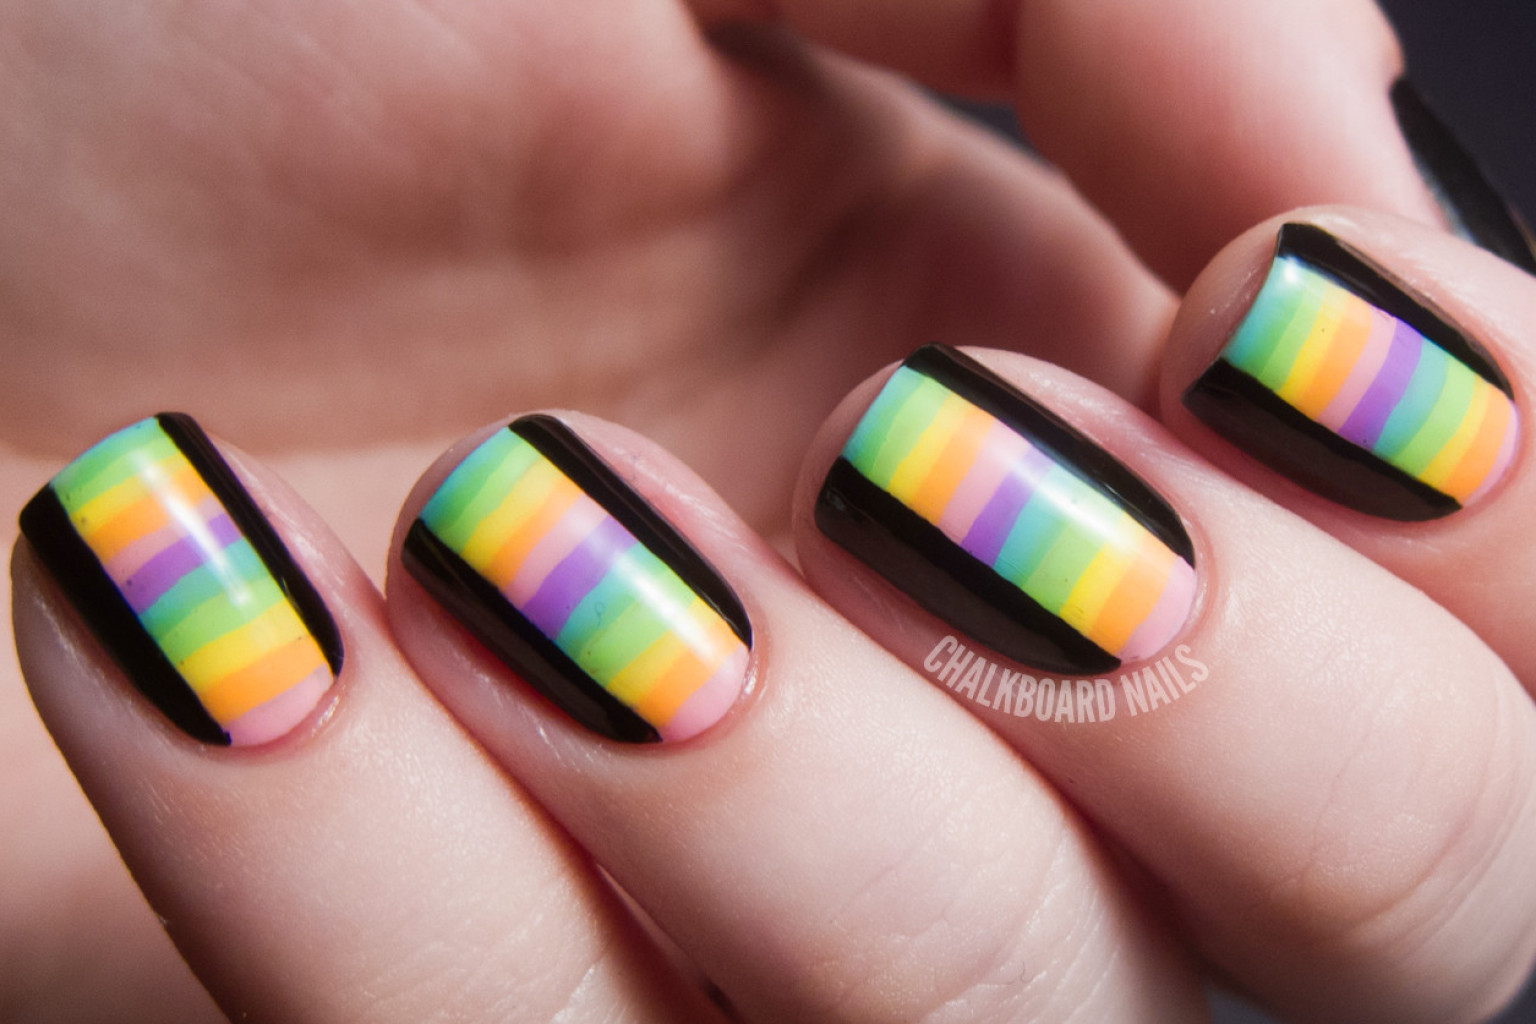 Diy nail ideas kaleidoscope nail art and more of our manicures from diy nail ideas kaleidoscope nail art and more of our manicures from this weekend photos huffpost solutioingenieria Image collections